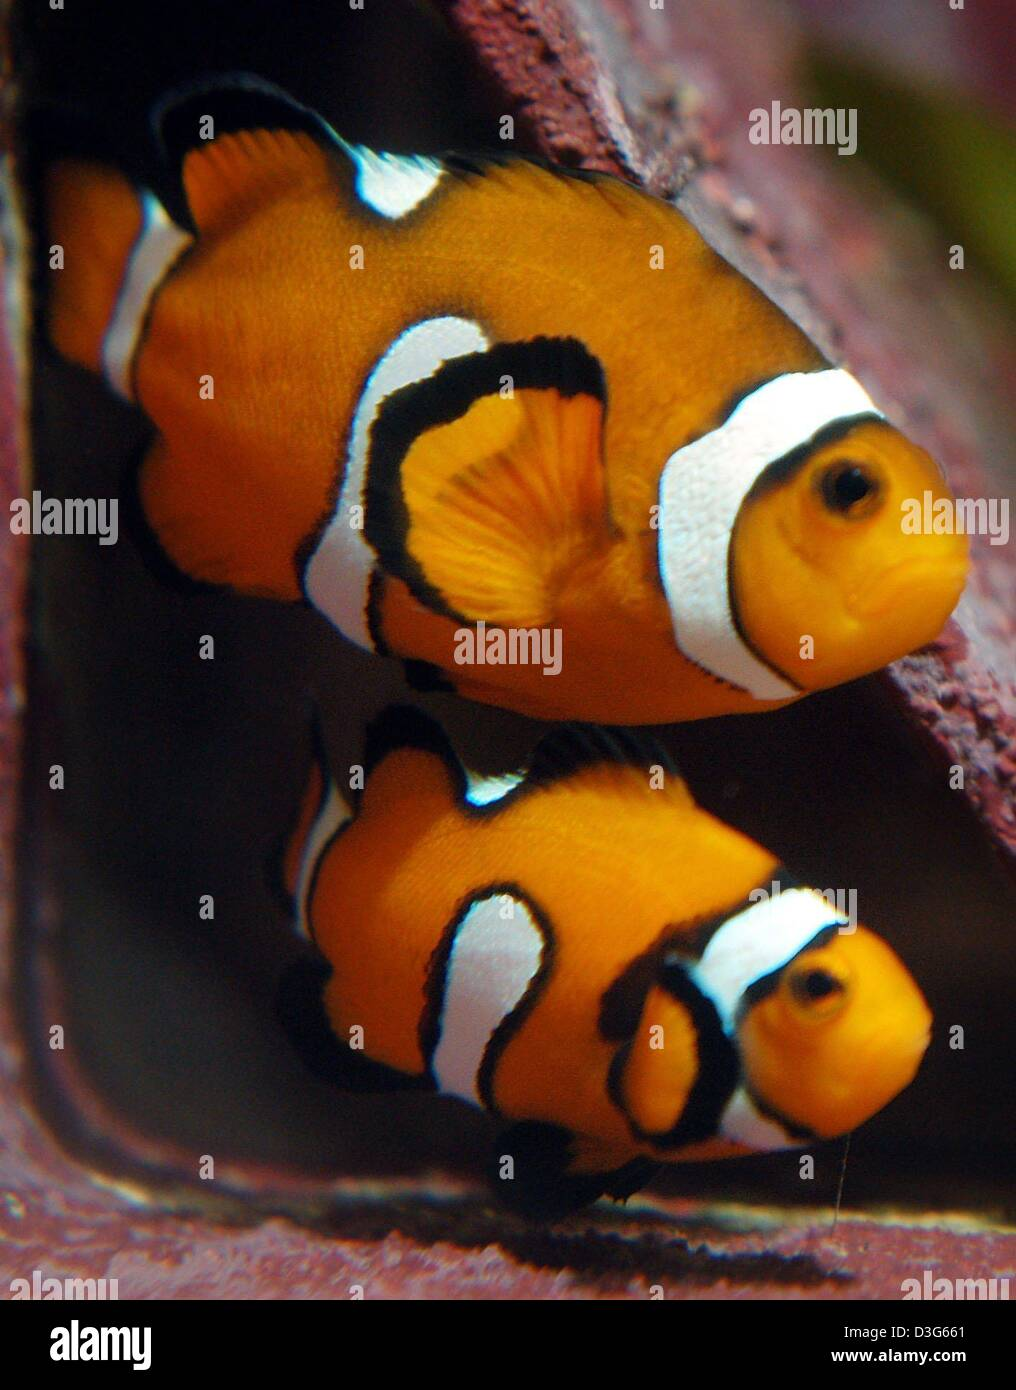 (dpa) - Two clownfish swim in an aquarium at the zoo in Frankfurt Main, Germany, 18 November 2003. According to - Stock Image